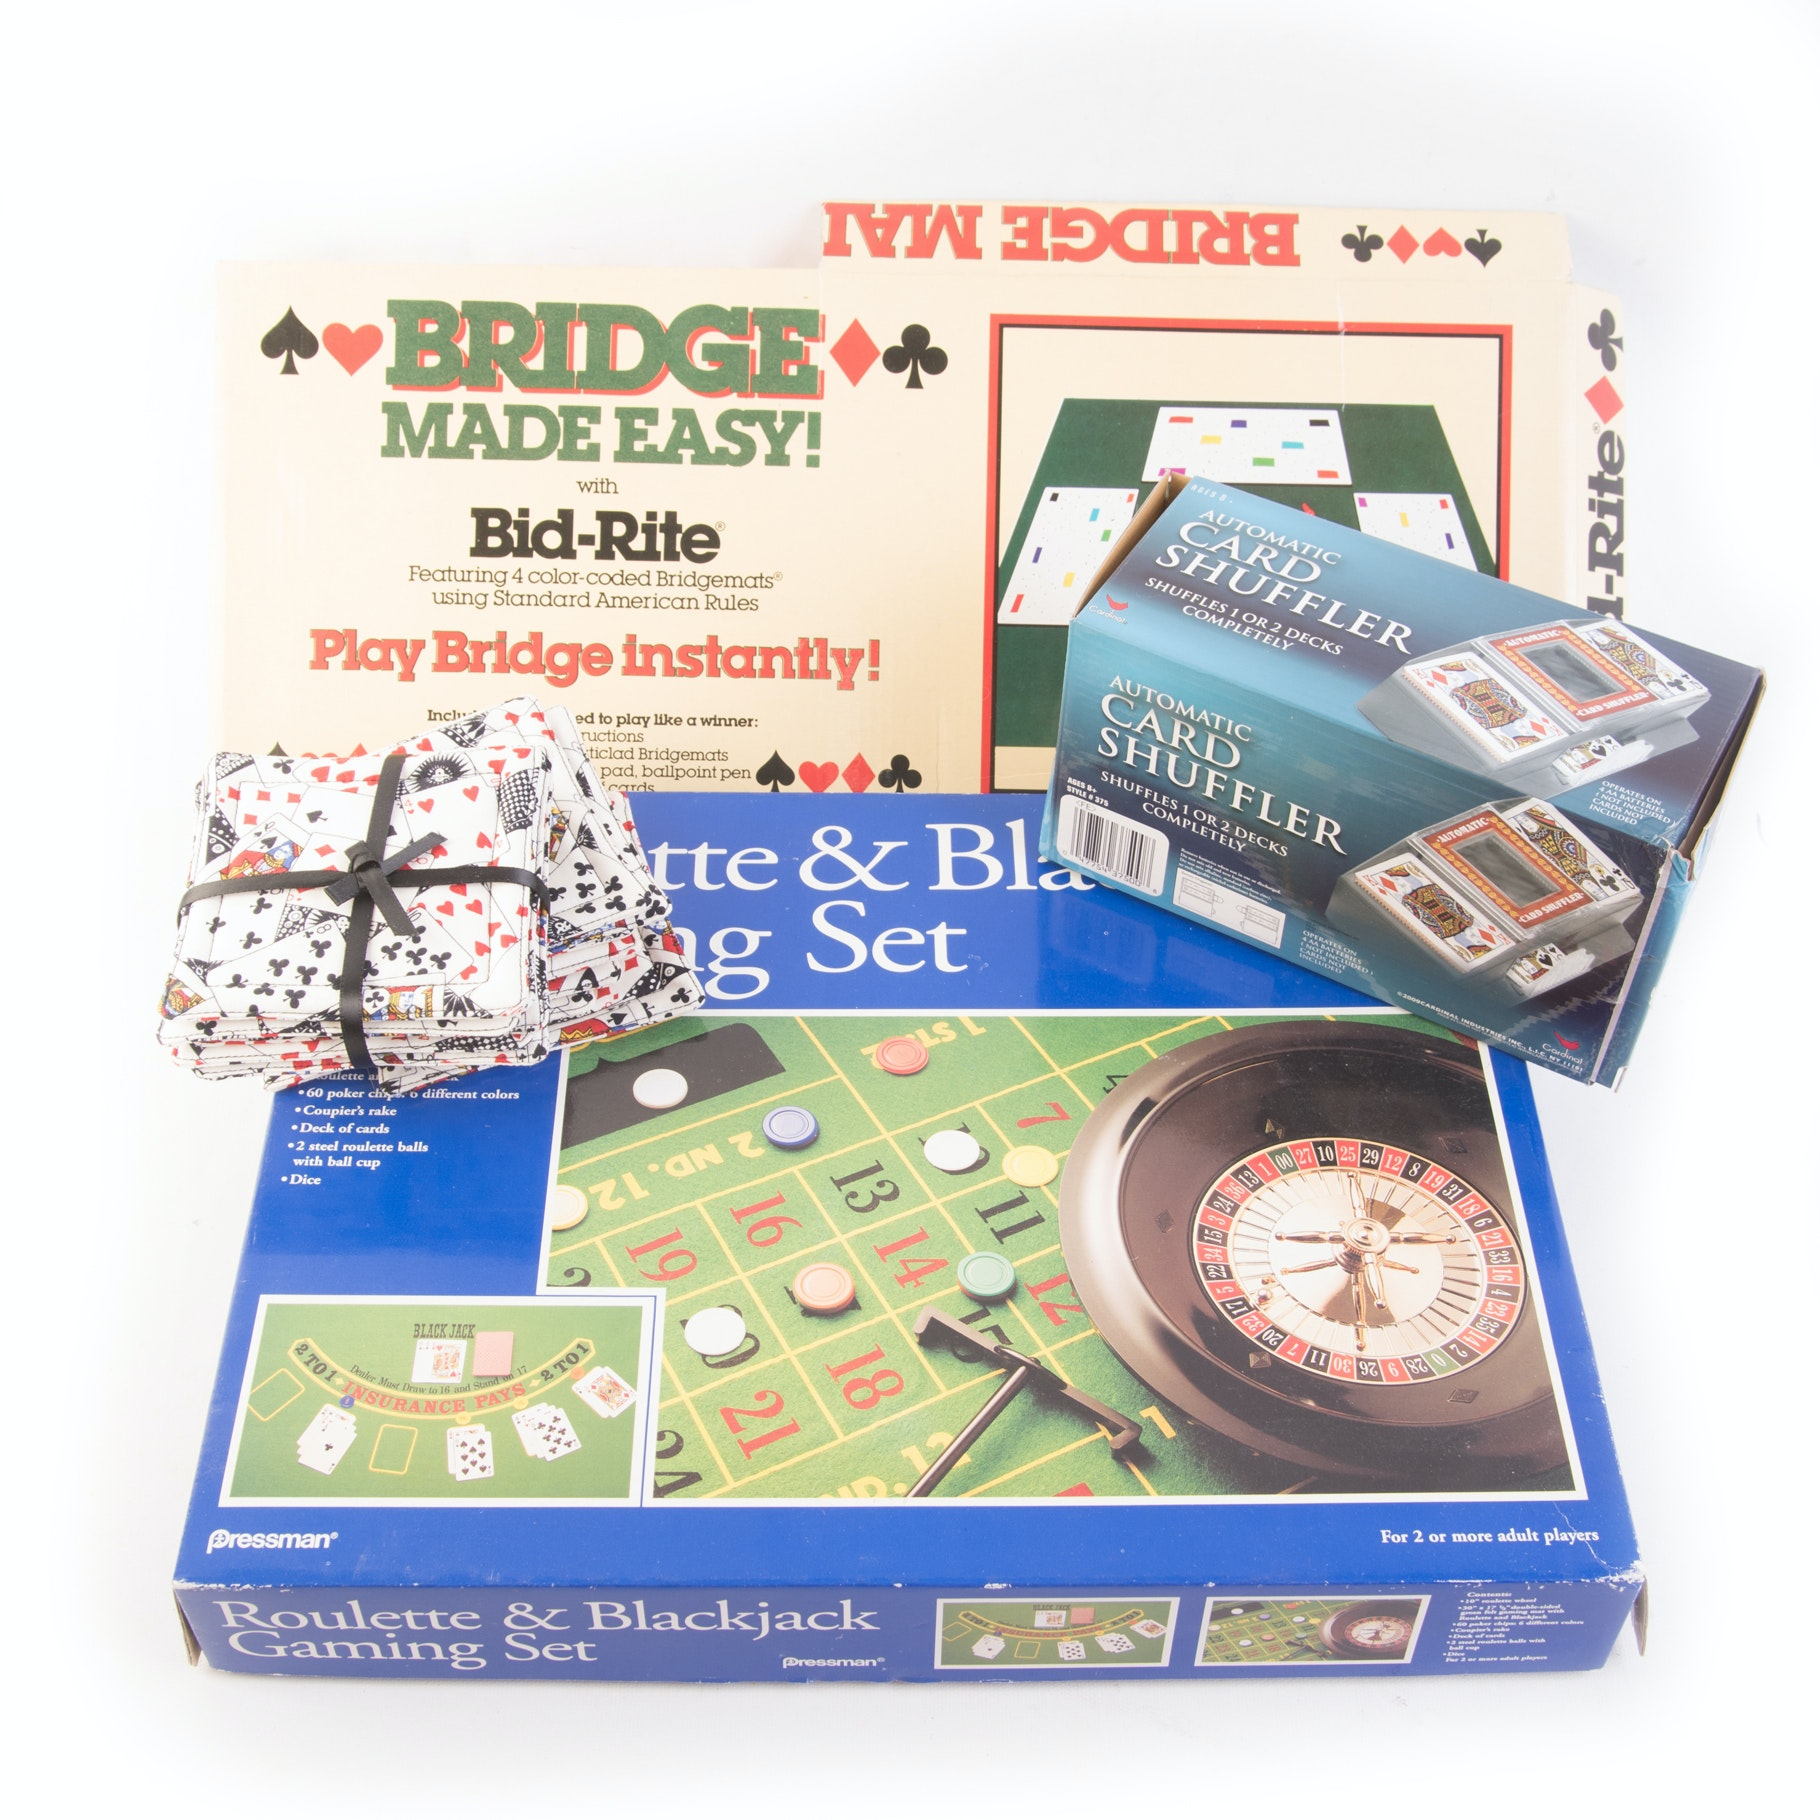 Game Sets, Automatic Card Shuffler, and Coasters